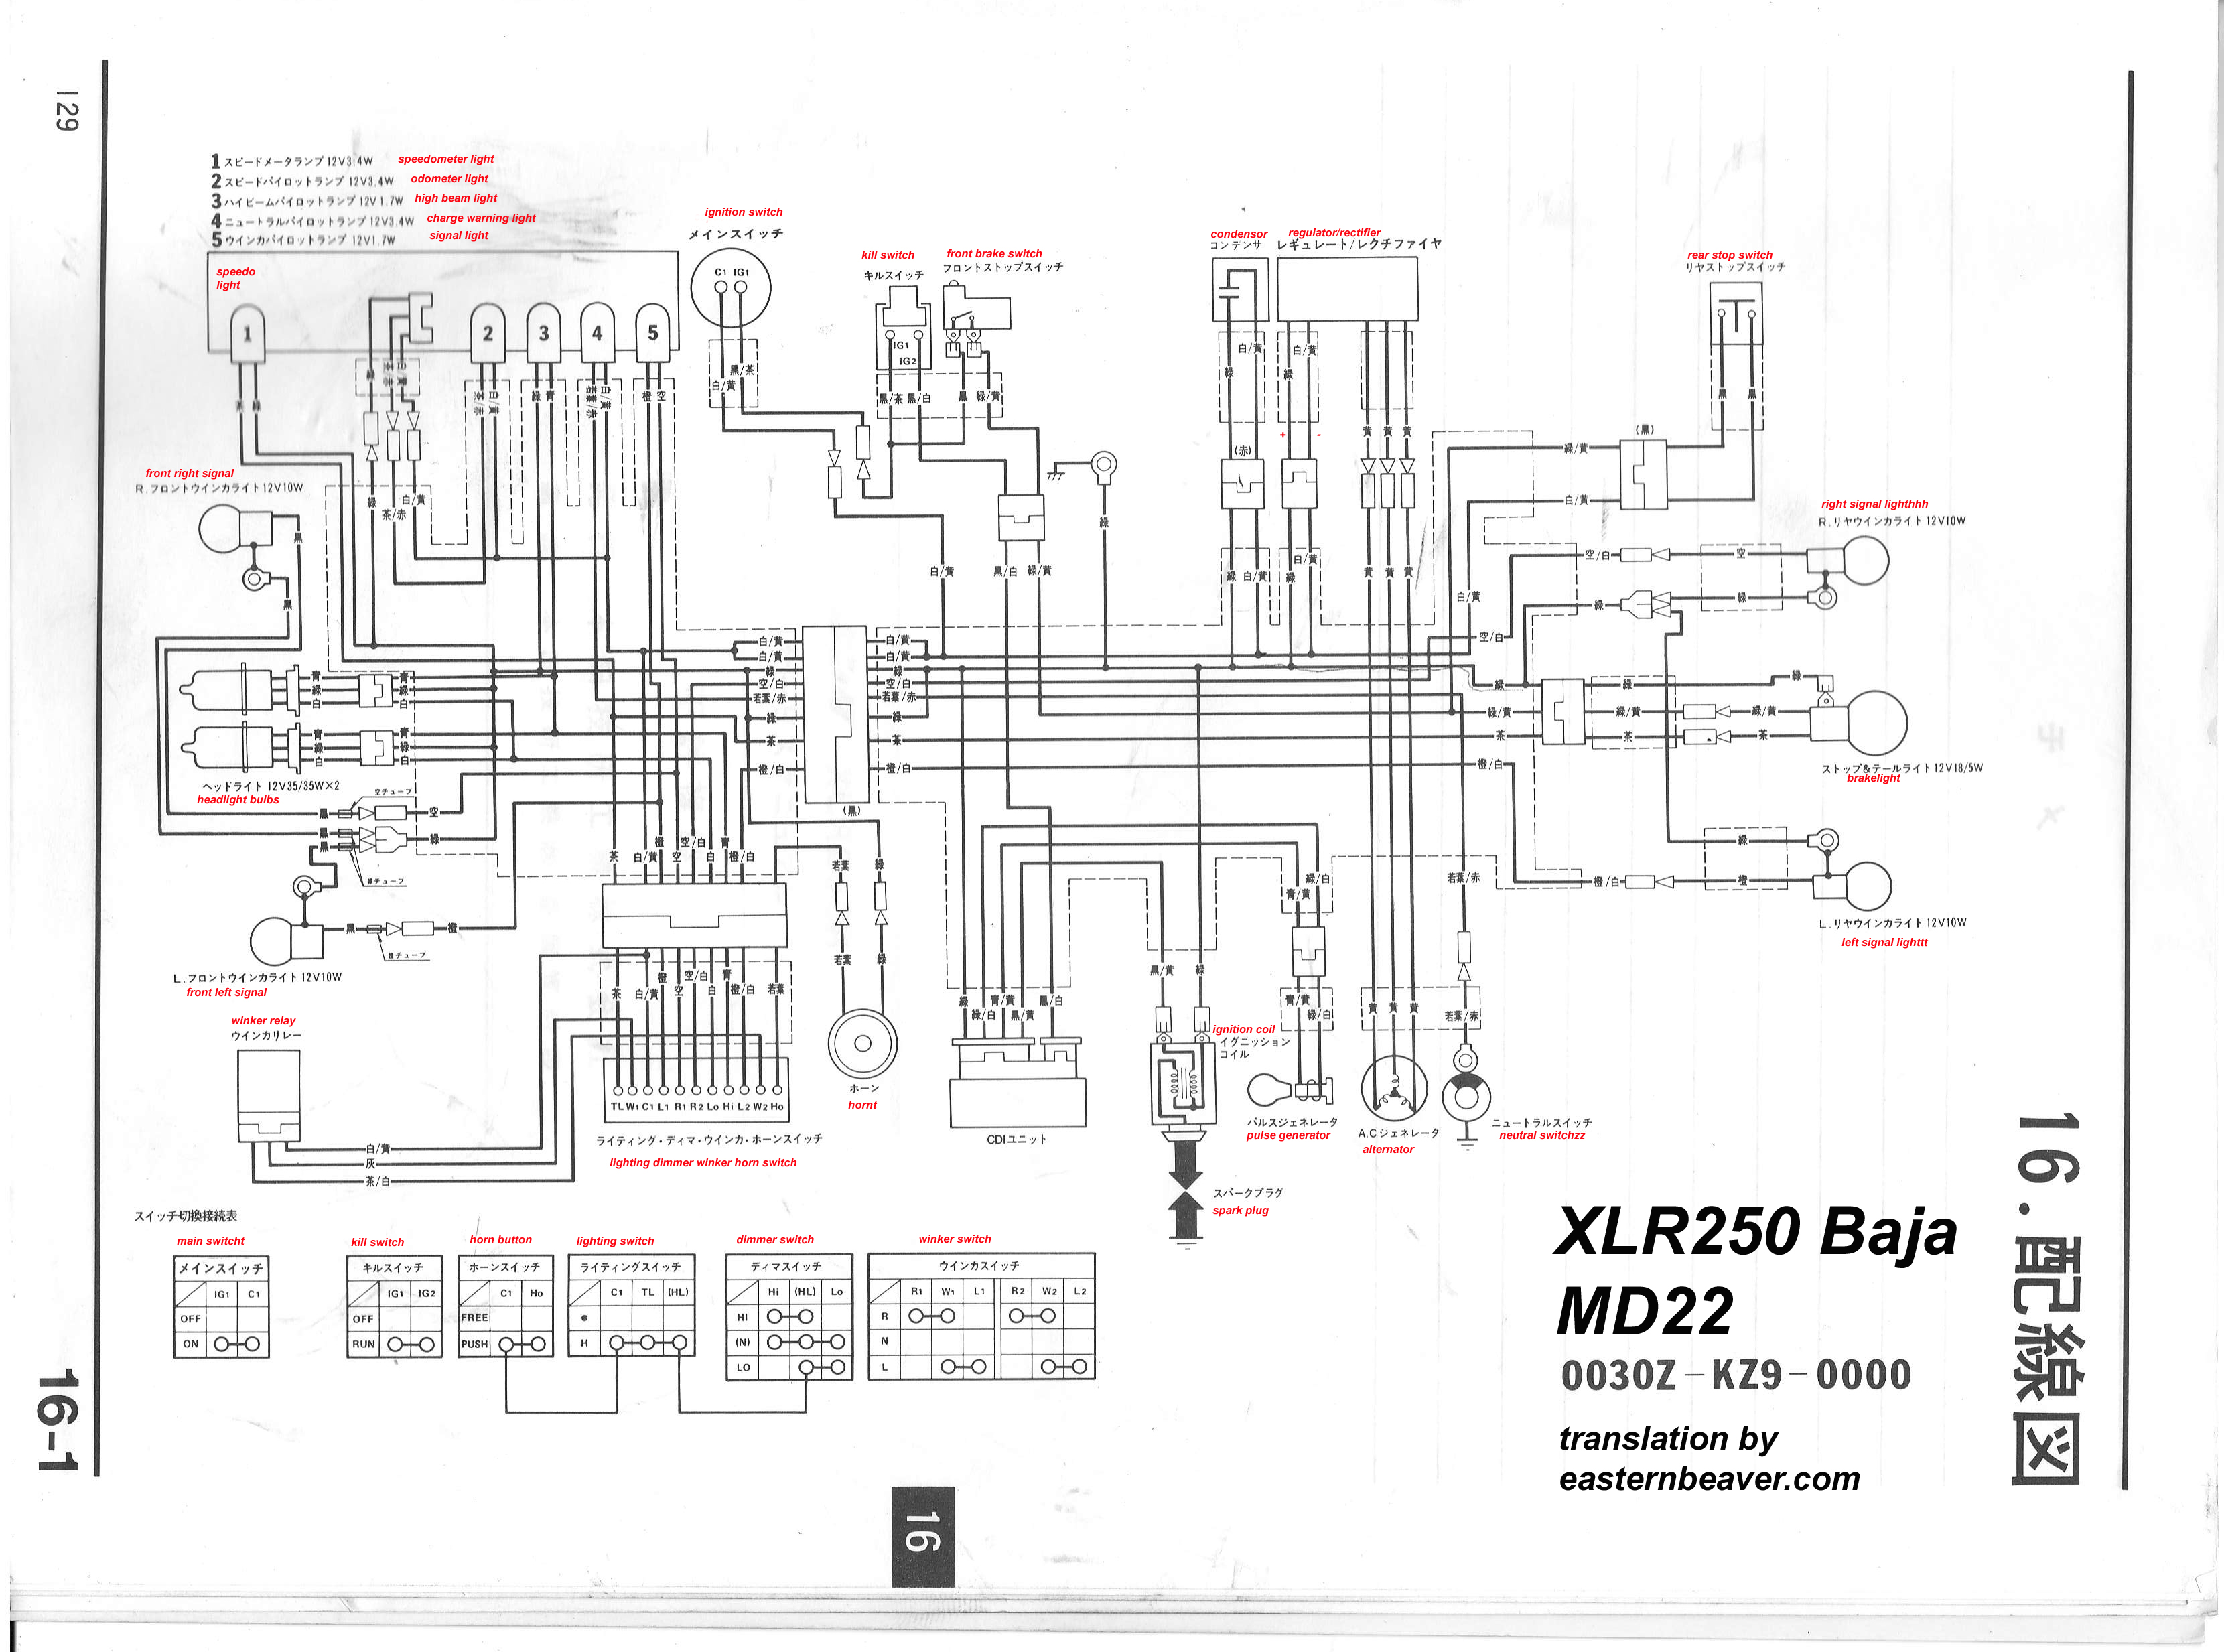 Wiring Diagram 1994 Honda Xr250l Schematics Diagrams Xl500r Xlr250 Baja Rh Easternbeaver Com 2000 Xr 600